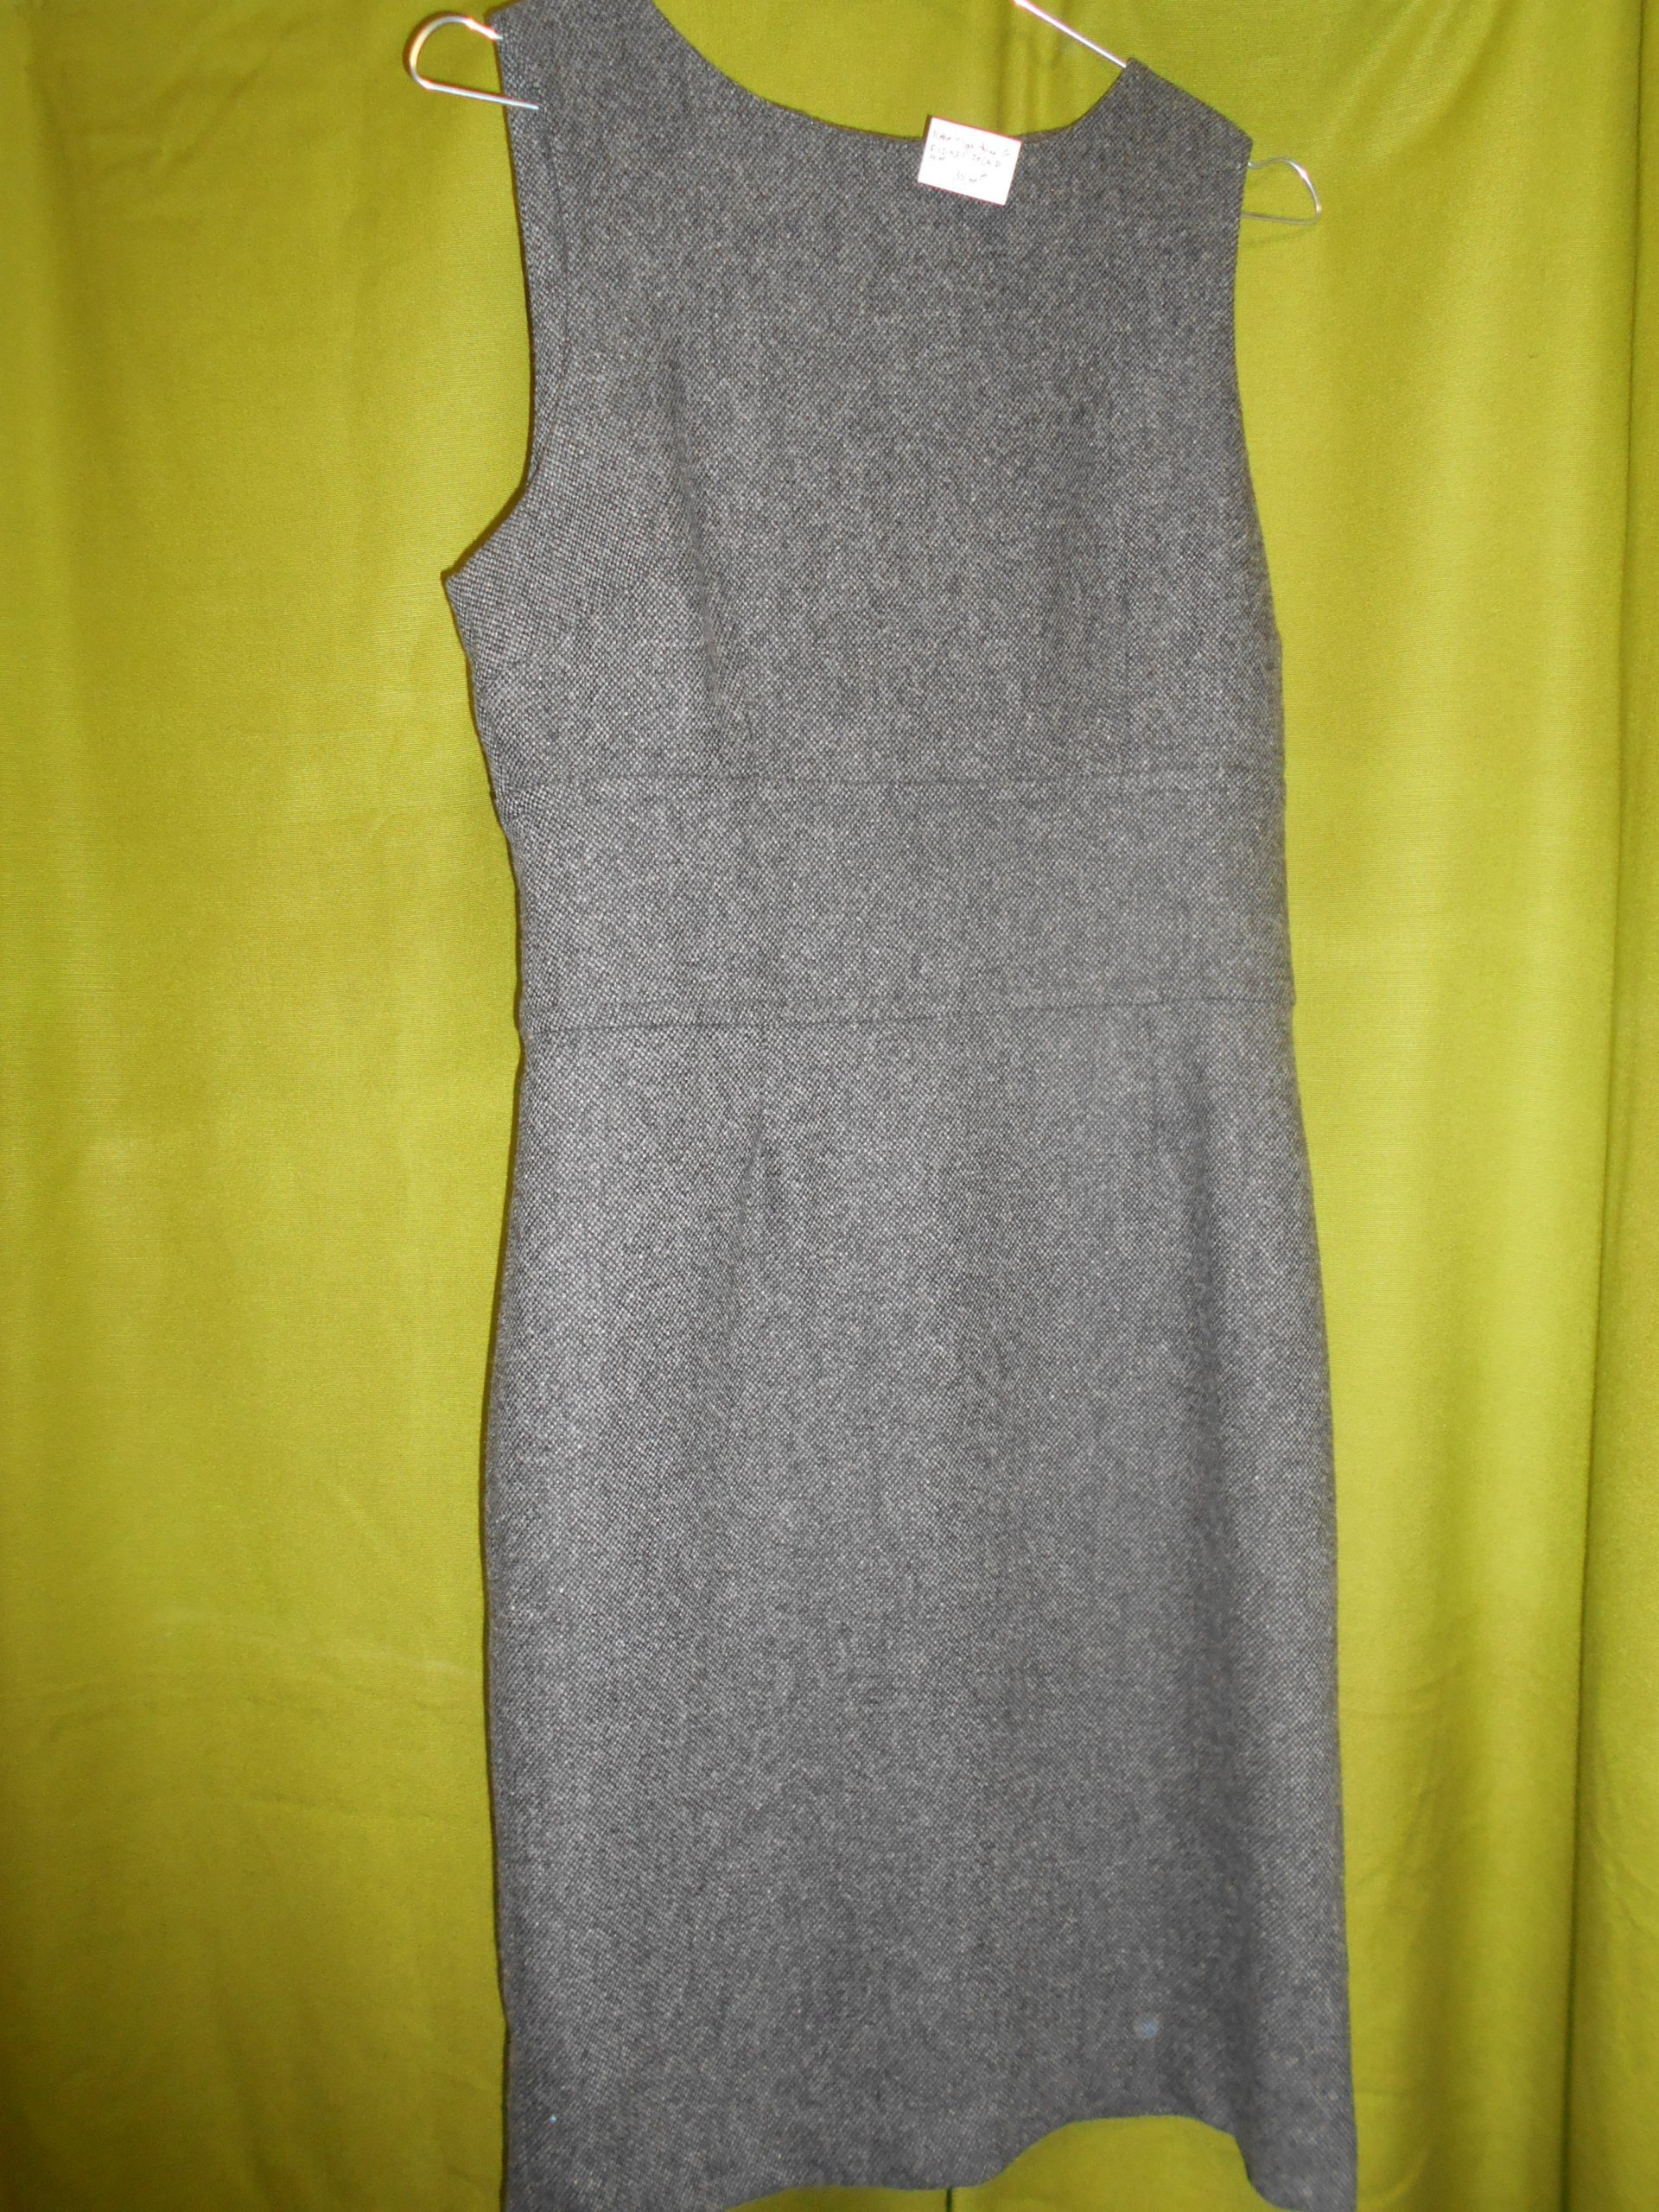 Robe Chasuble 123 Taille 36 Thionville Shop